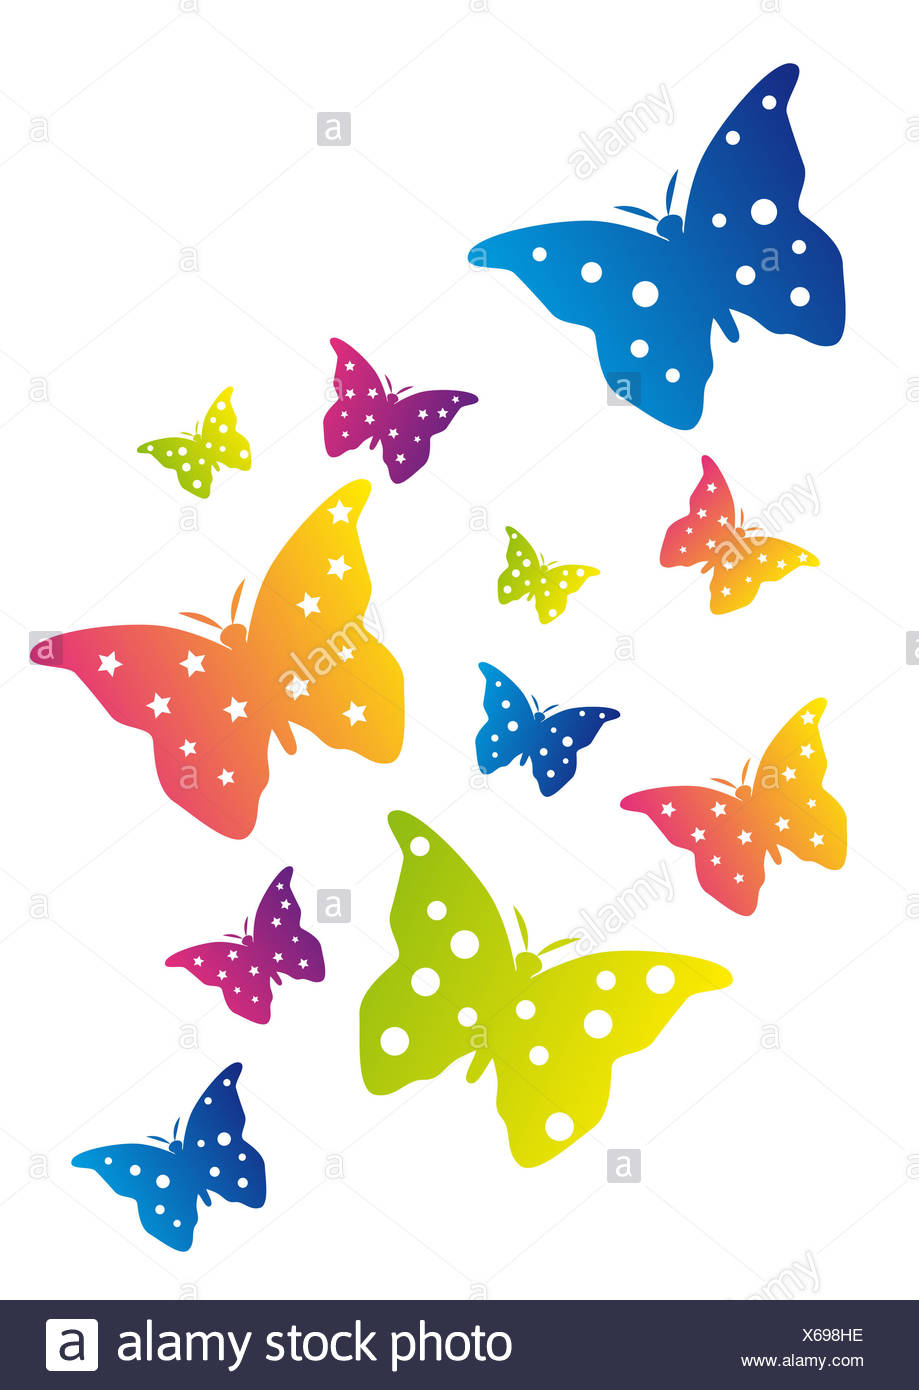 Free Vector | Hand drawn swarm butterfly background